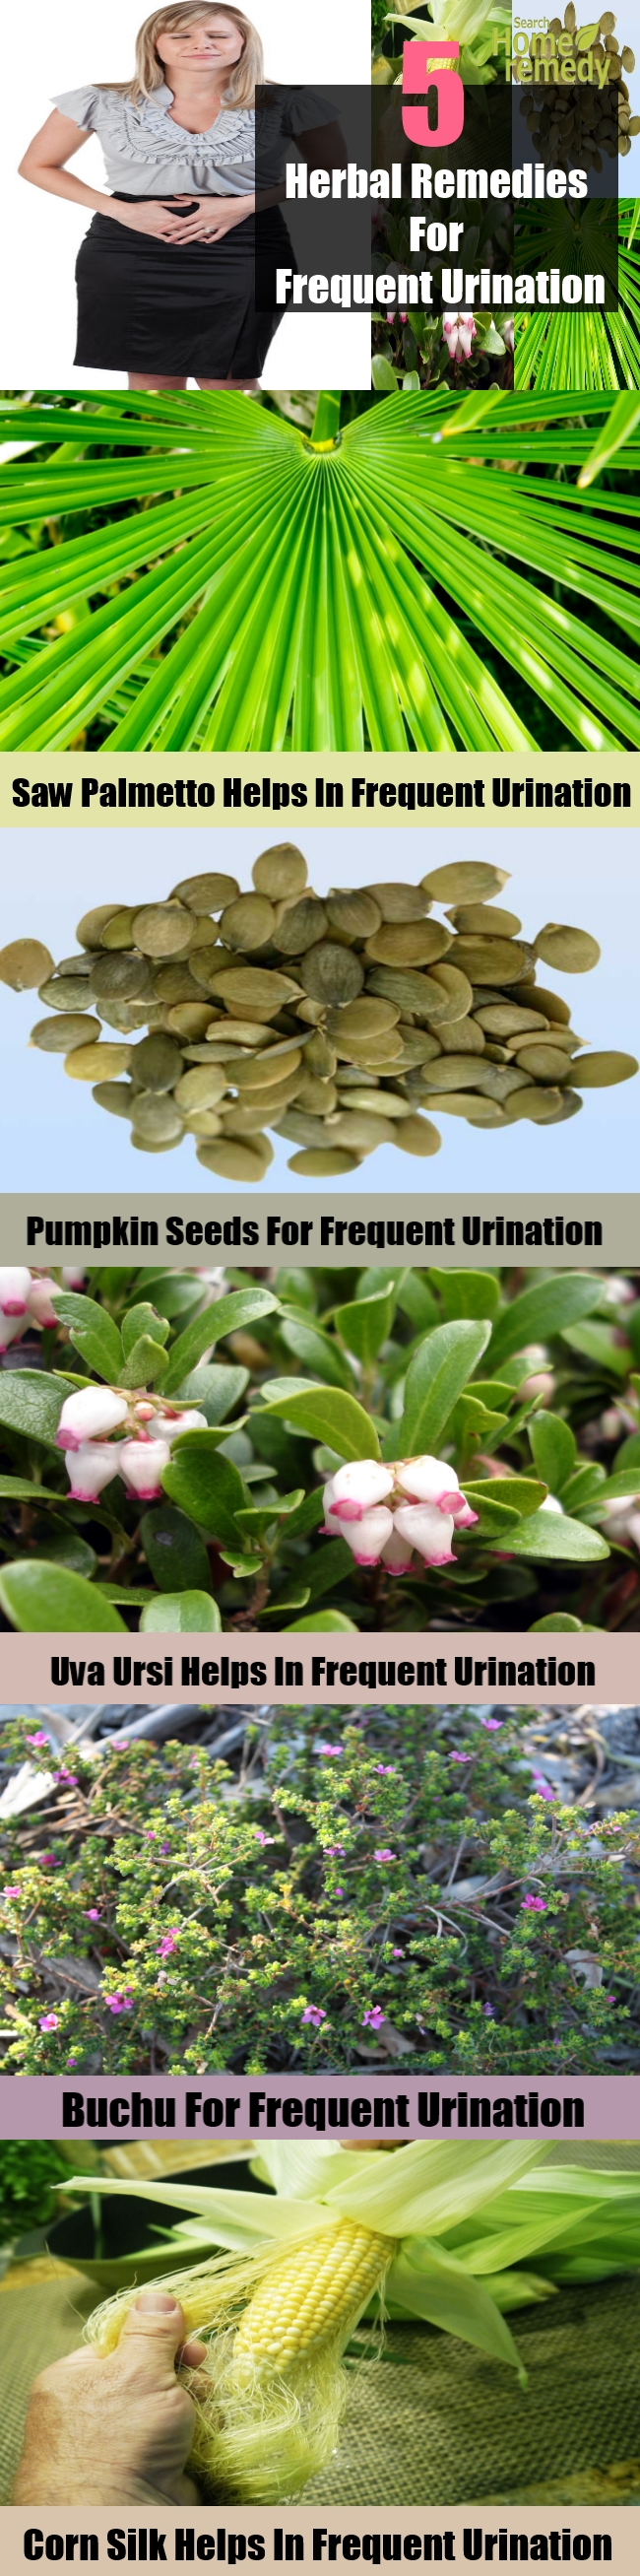 5 Best Herbal Remedies For Frequent Urination